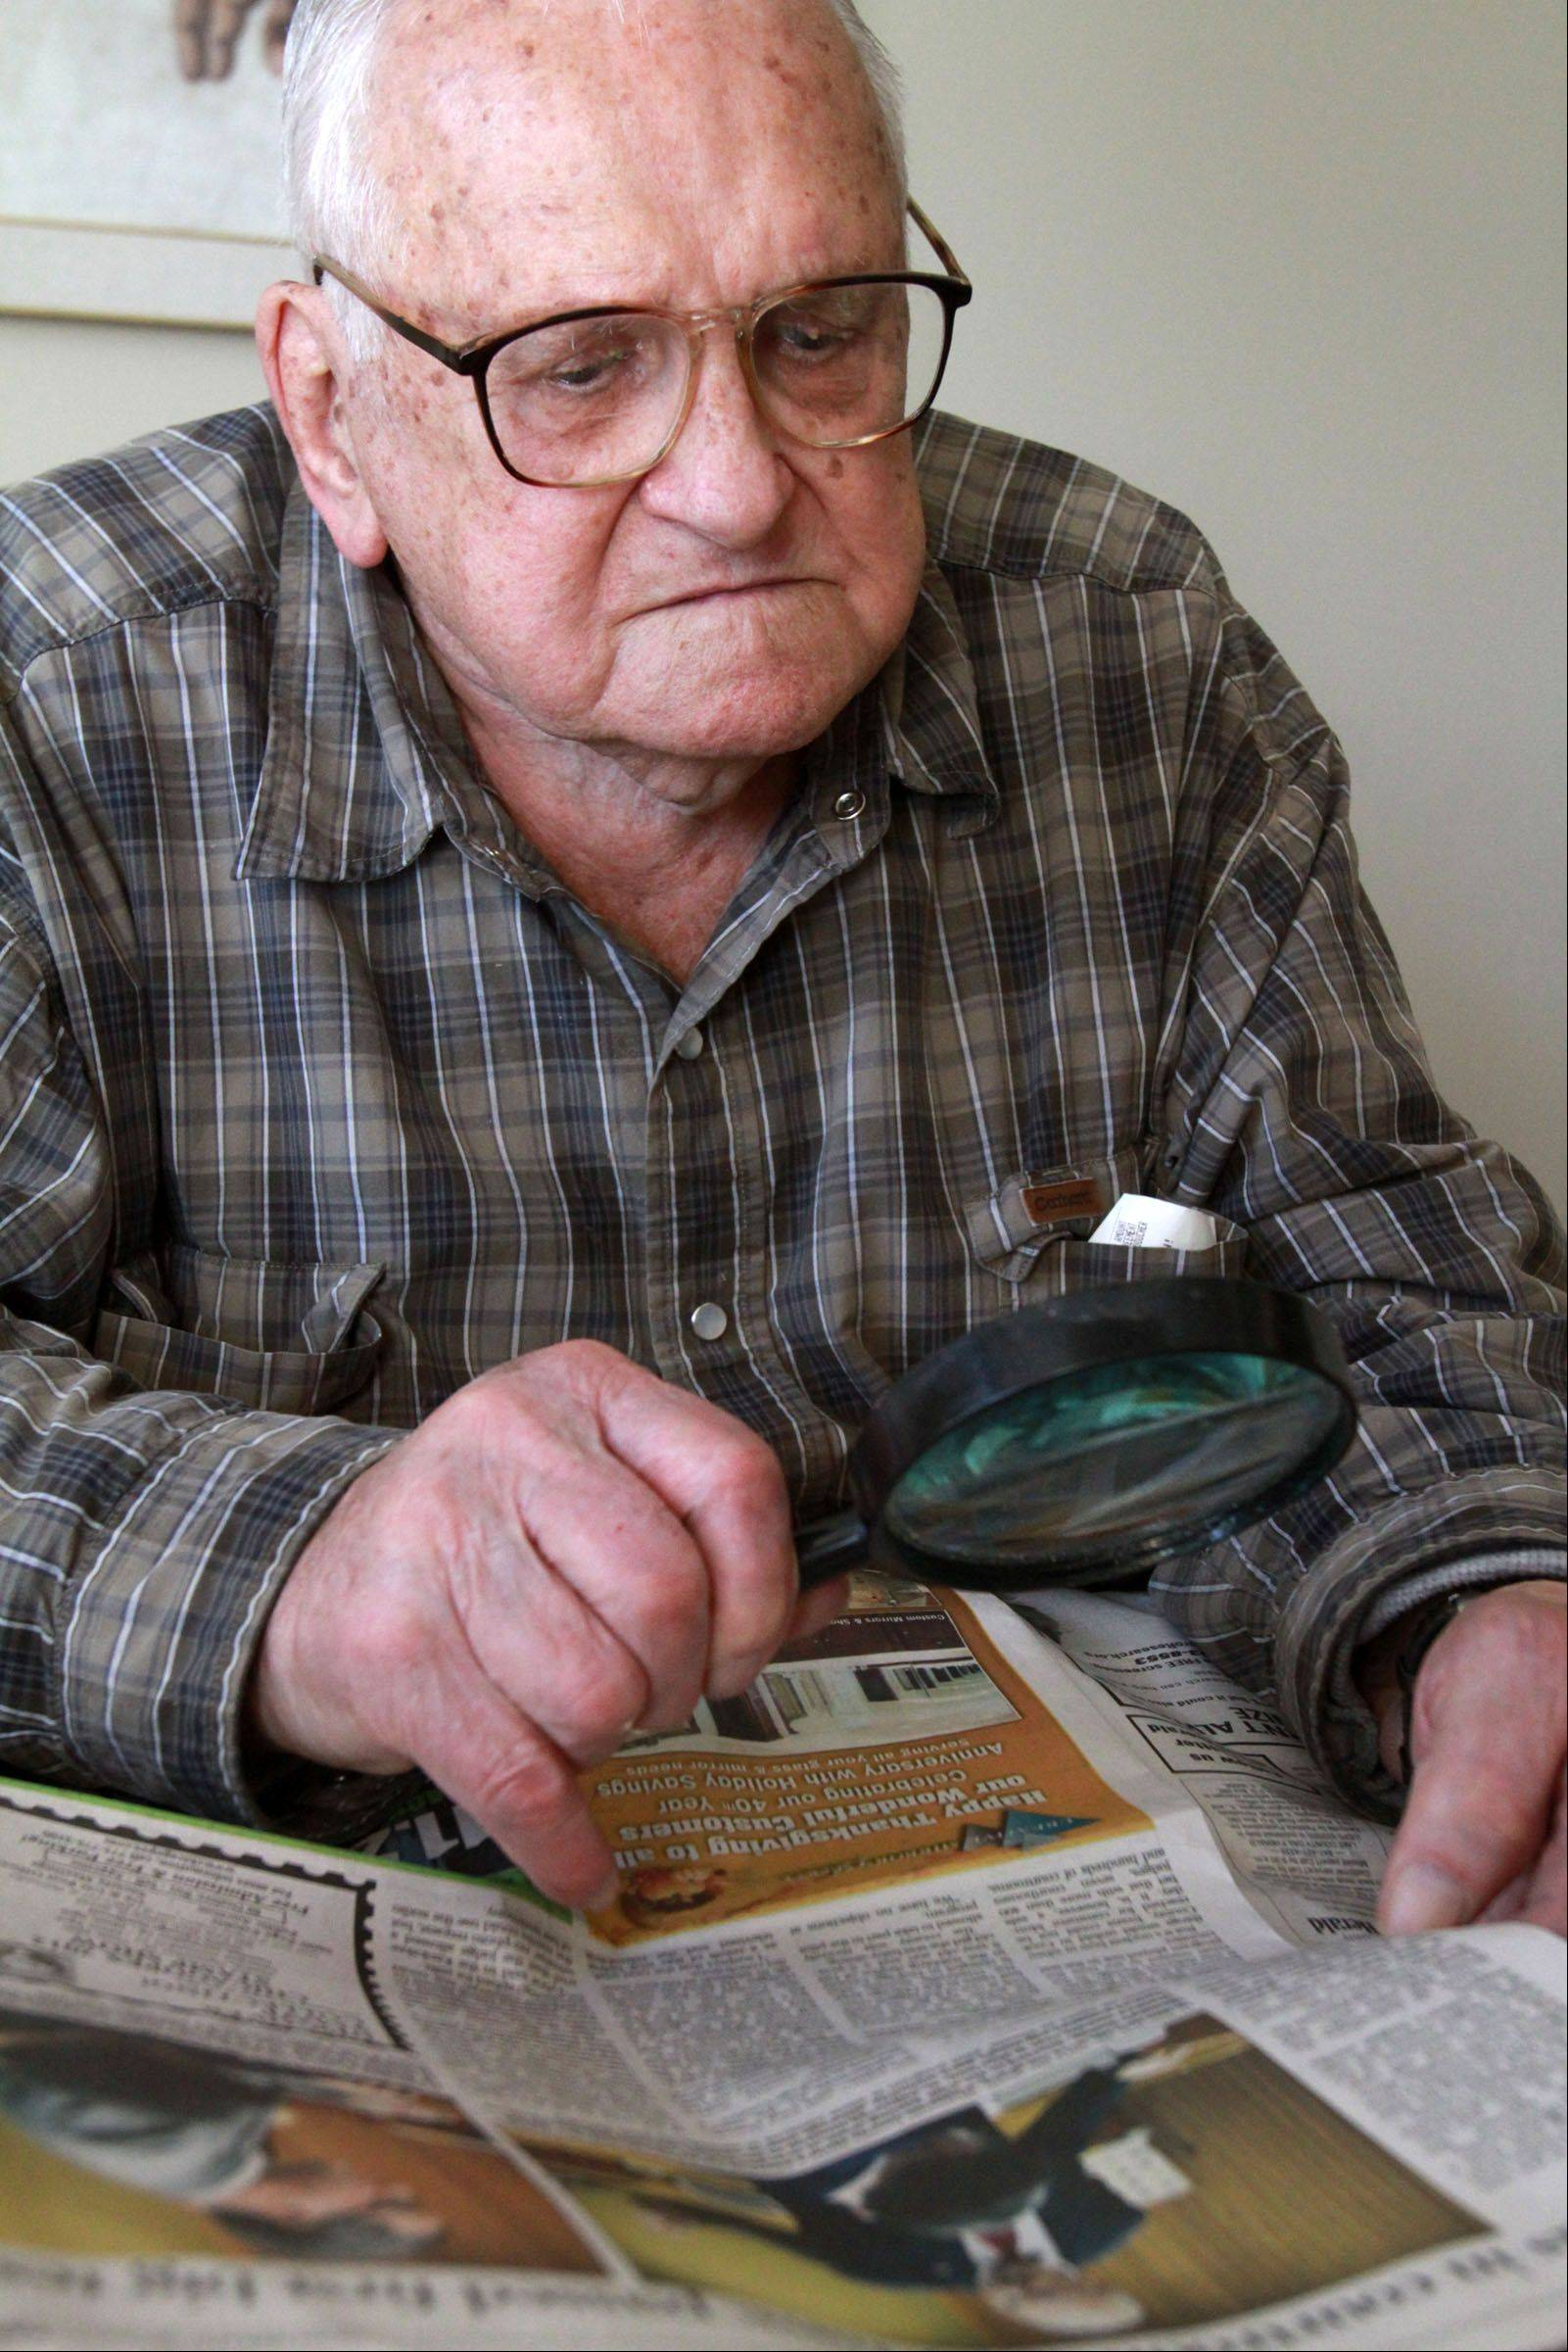 Romanian immigrant Steve Auer ignored his heart's atrial fibrillation on Election Day until after he voted. The 93-year-old Lake Zurich man keeps a close eye on politics by reading three daily newspapers.